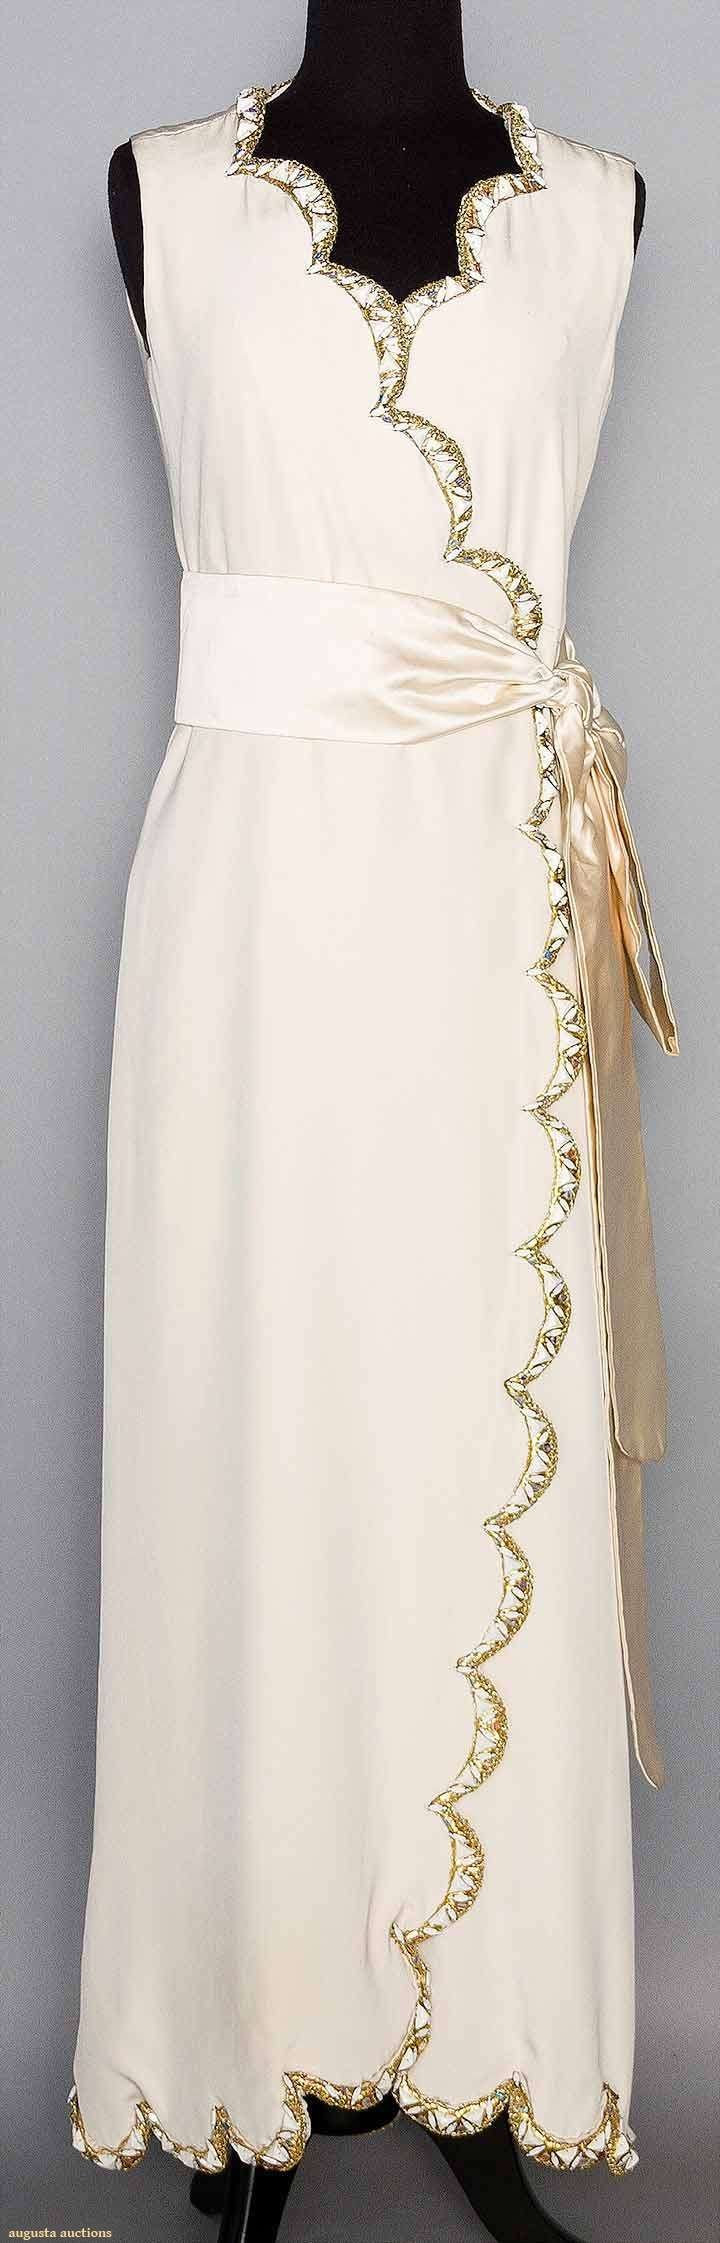 Top 25+ best White evening gowns ideas on Pinterest | White ...